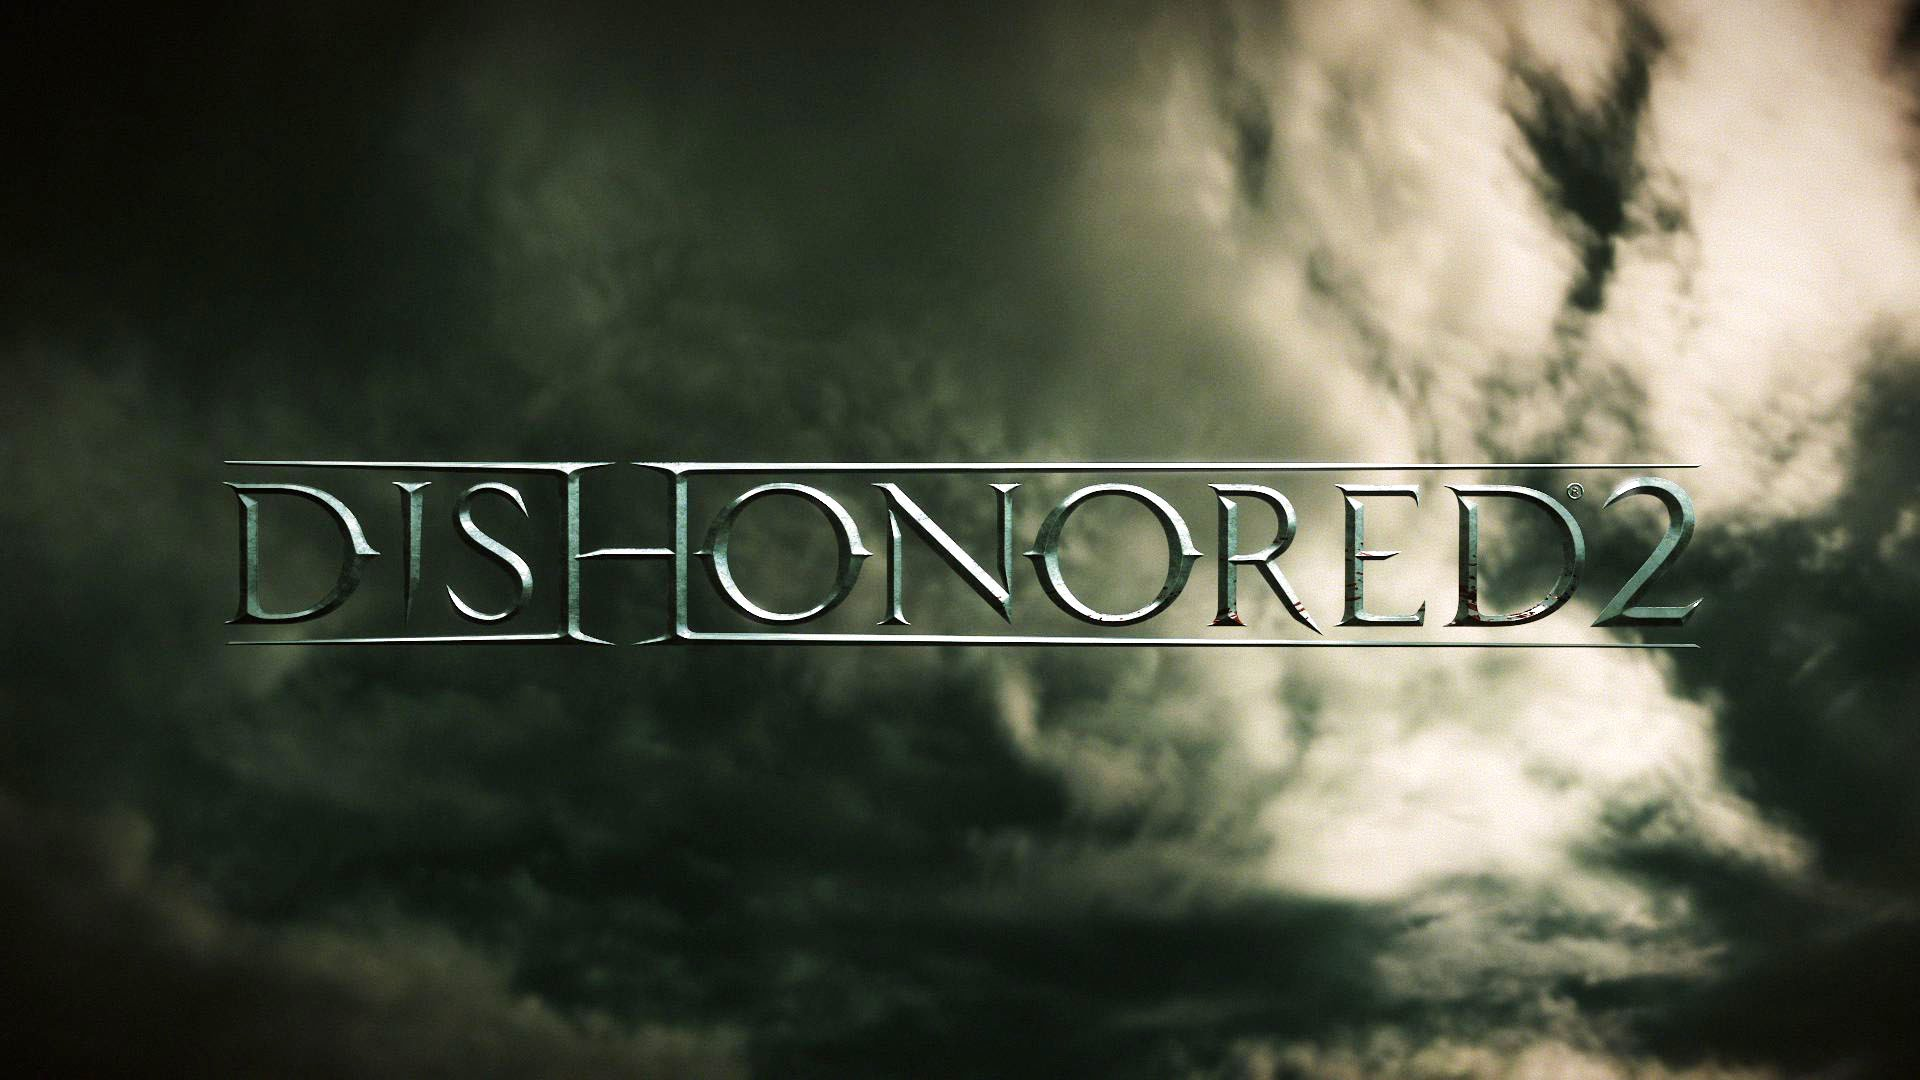 Dishonored 2 announced, play as Emily or Corvo